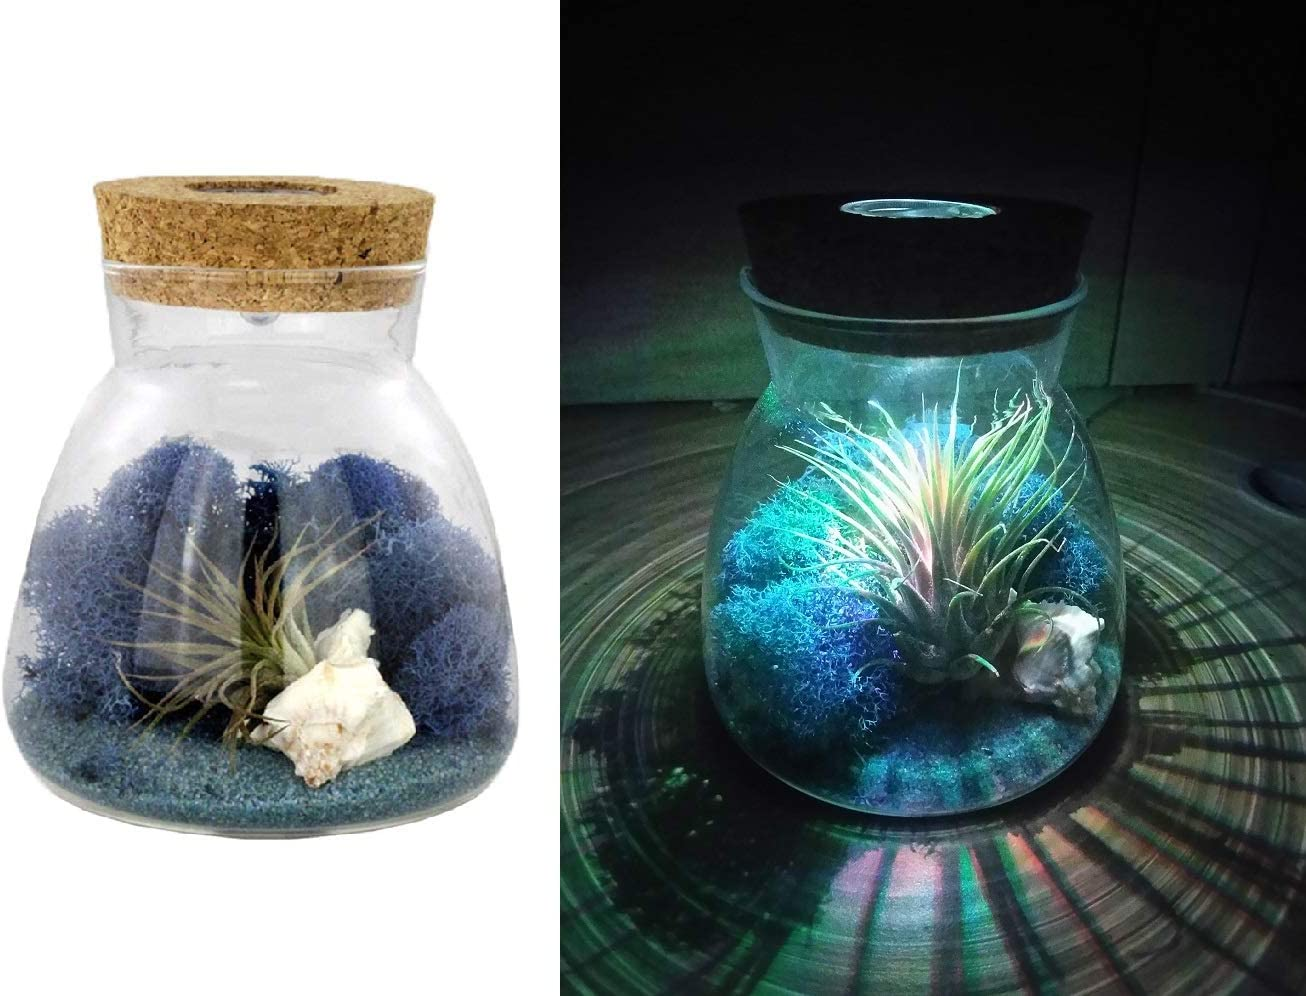 Amazon Com Nw Wholesaler Live Tillandsia Air Plant Terrarium Kit With Color Changing Led Light Display Multi Color Illuminating Light Changes Air Plants Colors Blue Sand Garden Outdoor